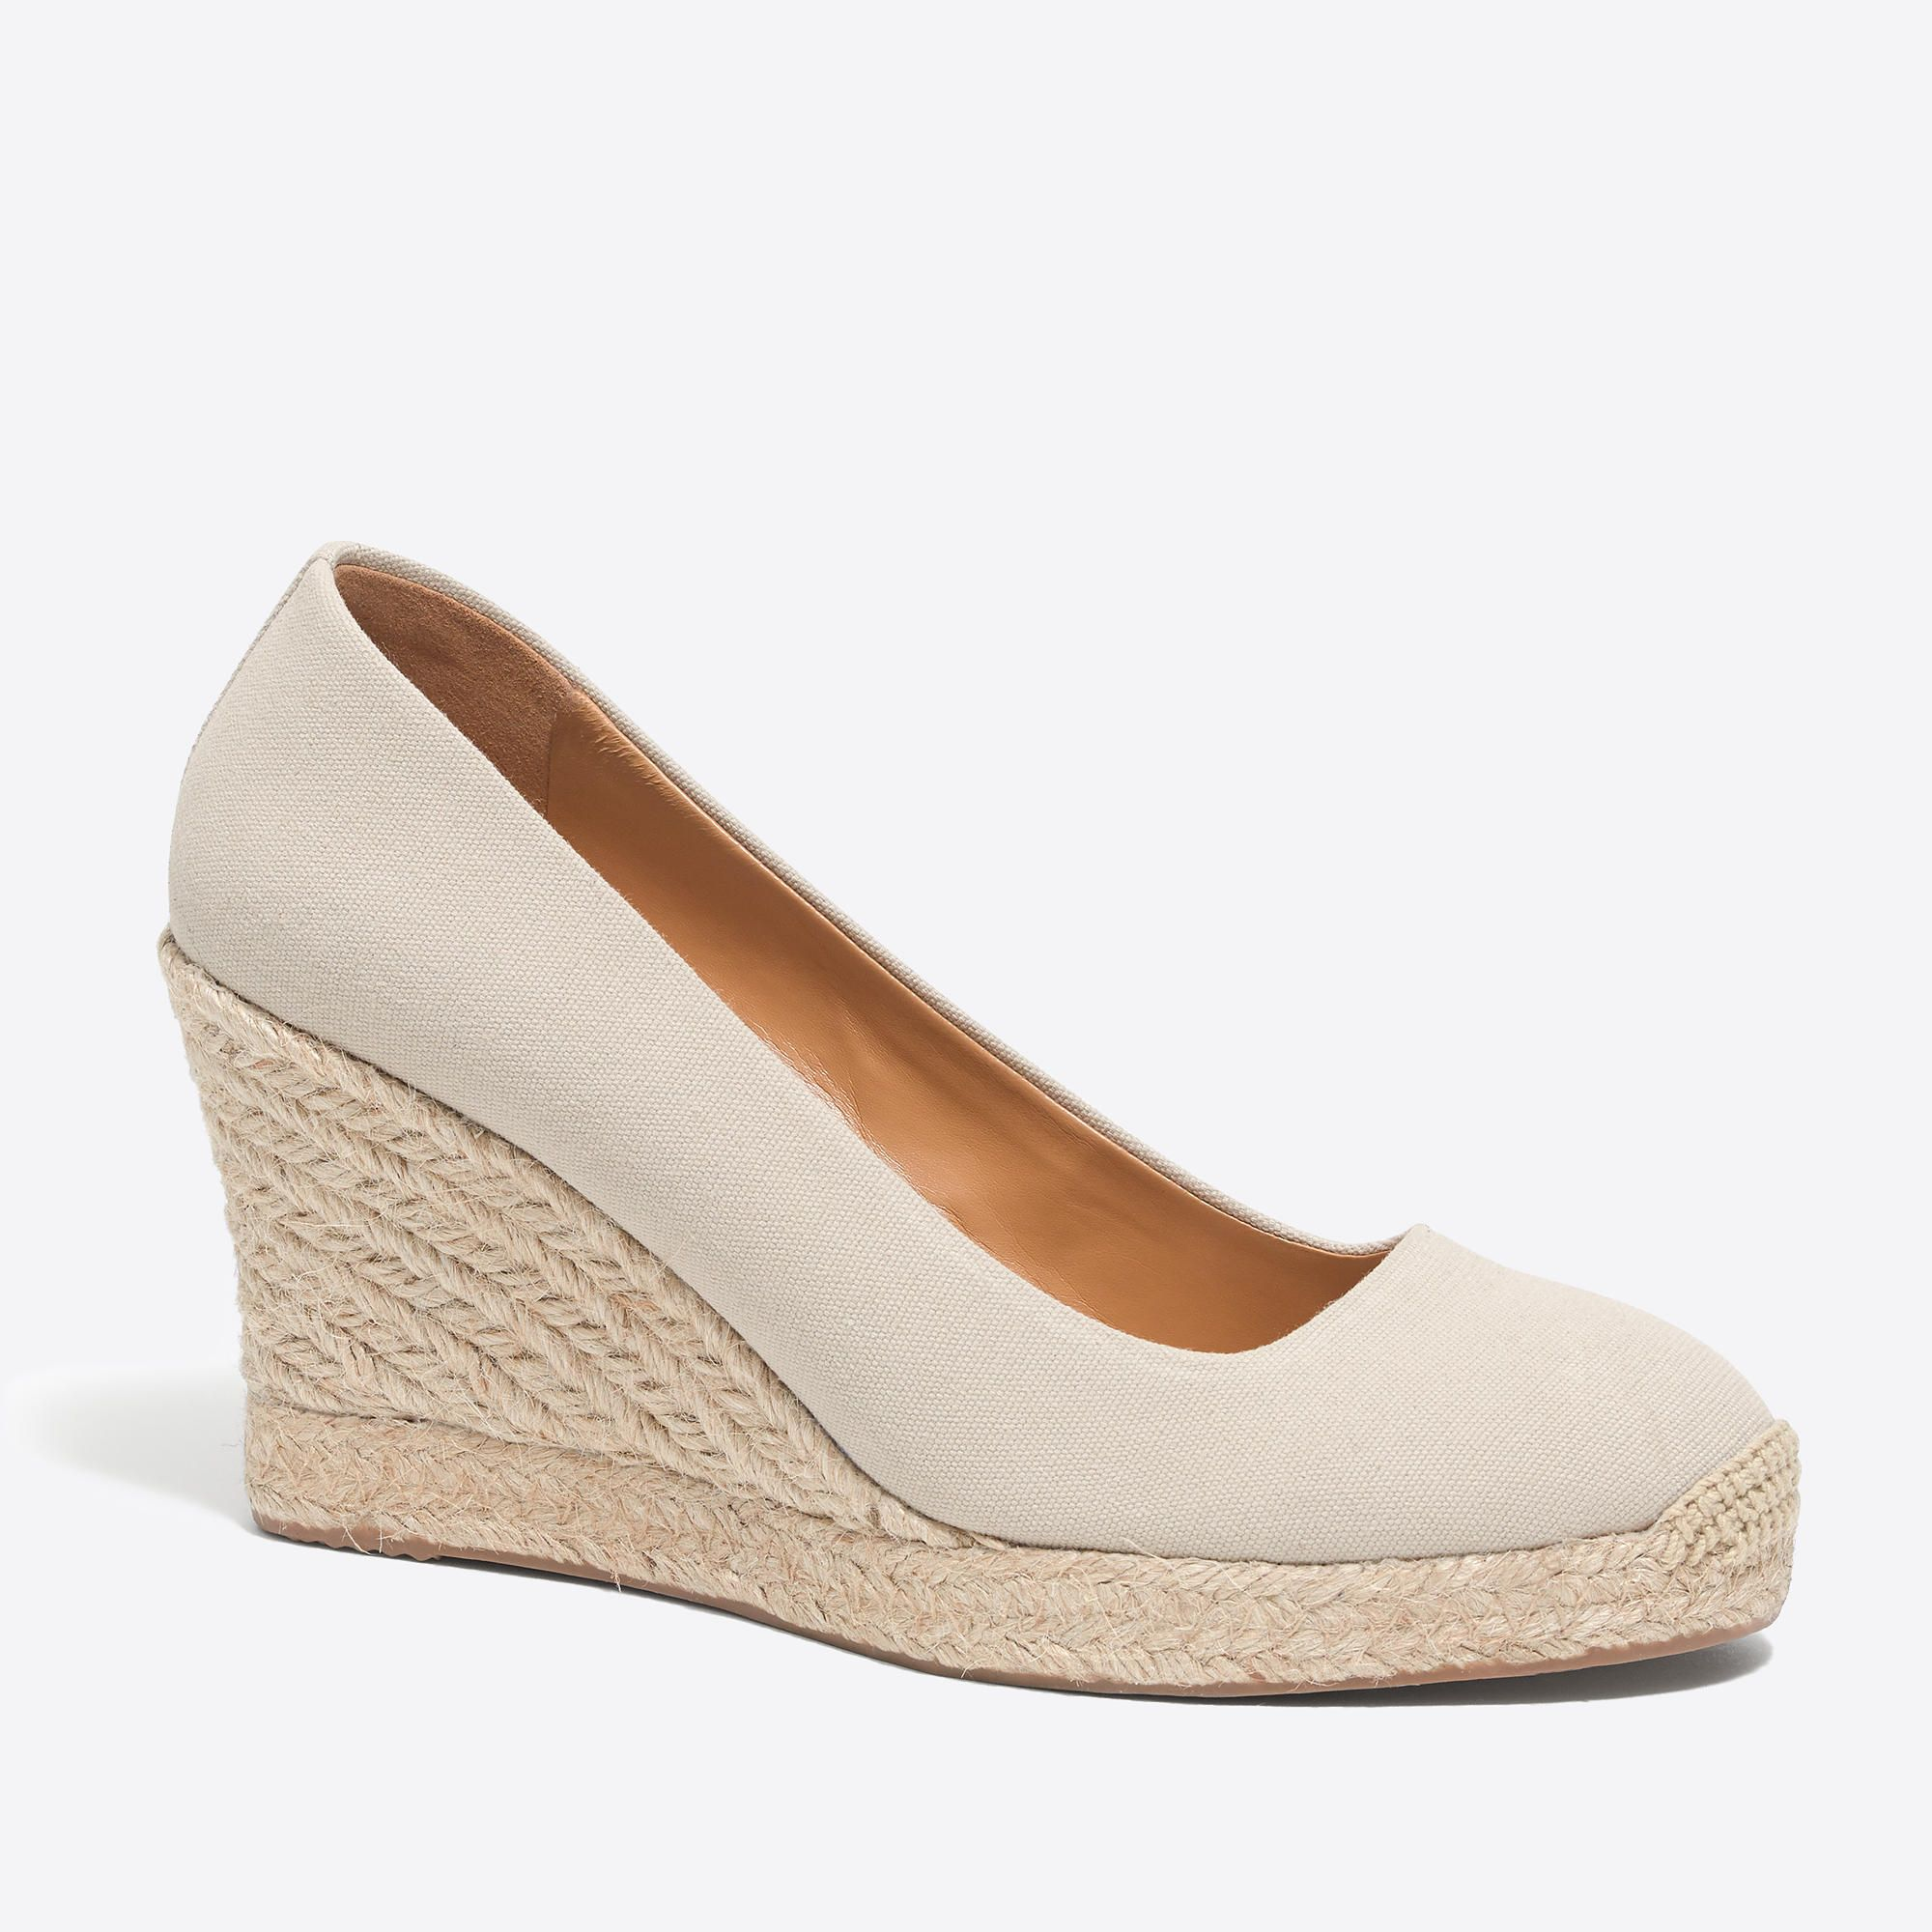 39dd79765bd Canvas espadrille wedges in 2019 | Shoes | Espadrilles, Wedge shoes ...